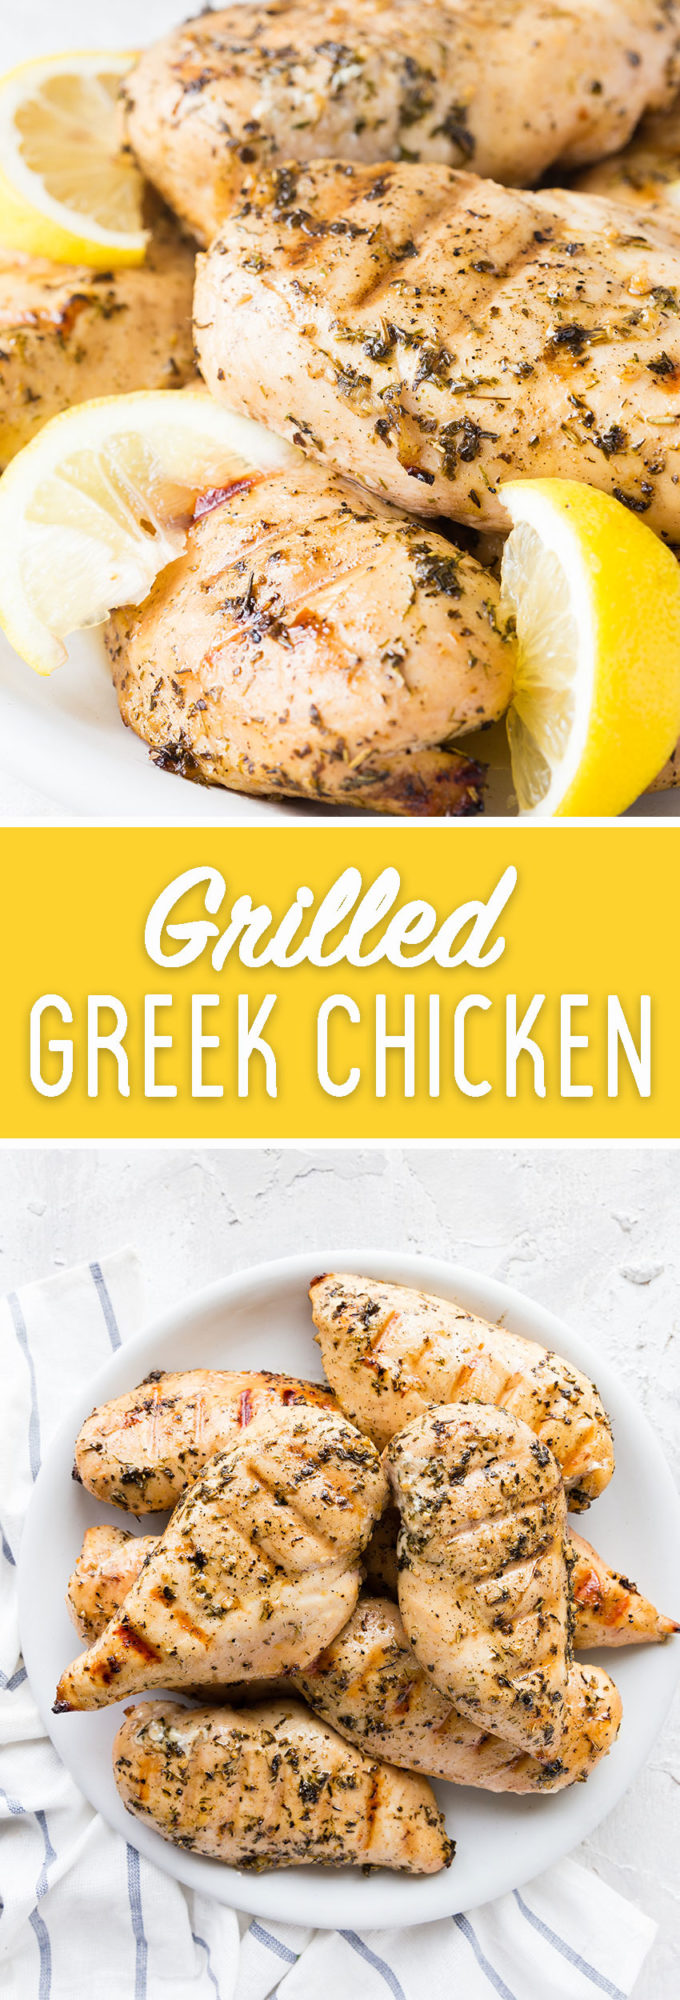 Easy to make grilled Greek chicken with the perfect marinade